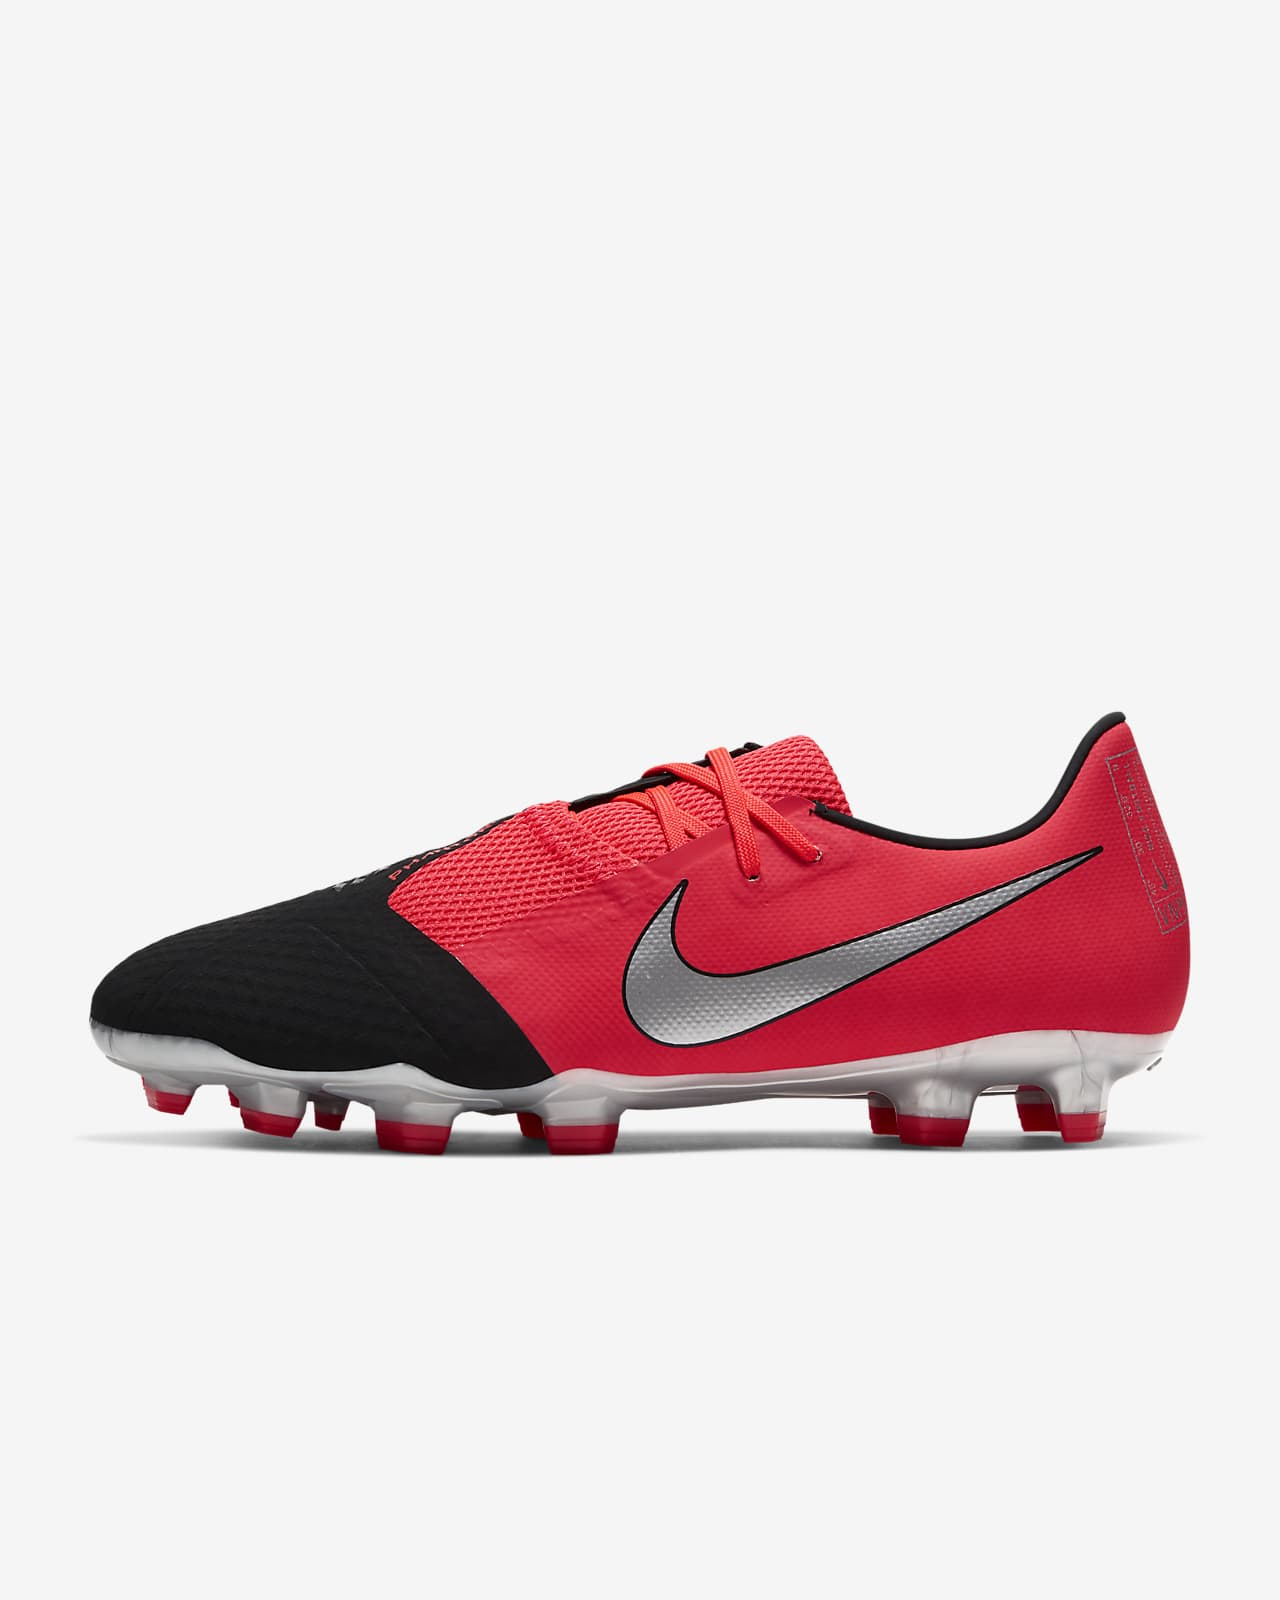 lento Onza Flotar  Nike Phantom Venom Academy FG Firm-Ground Football Boot. Nike IN